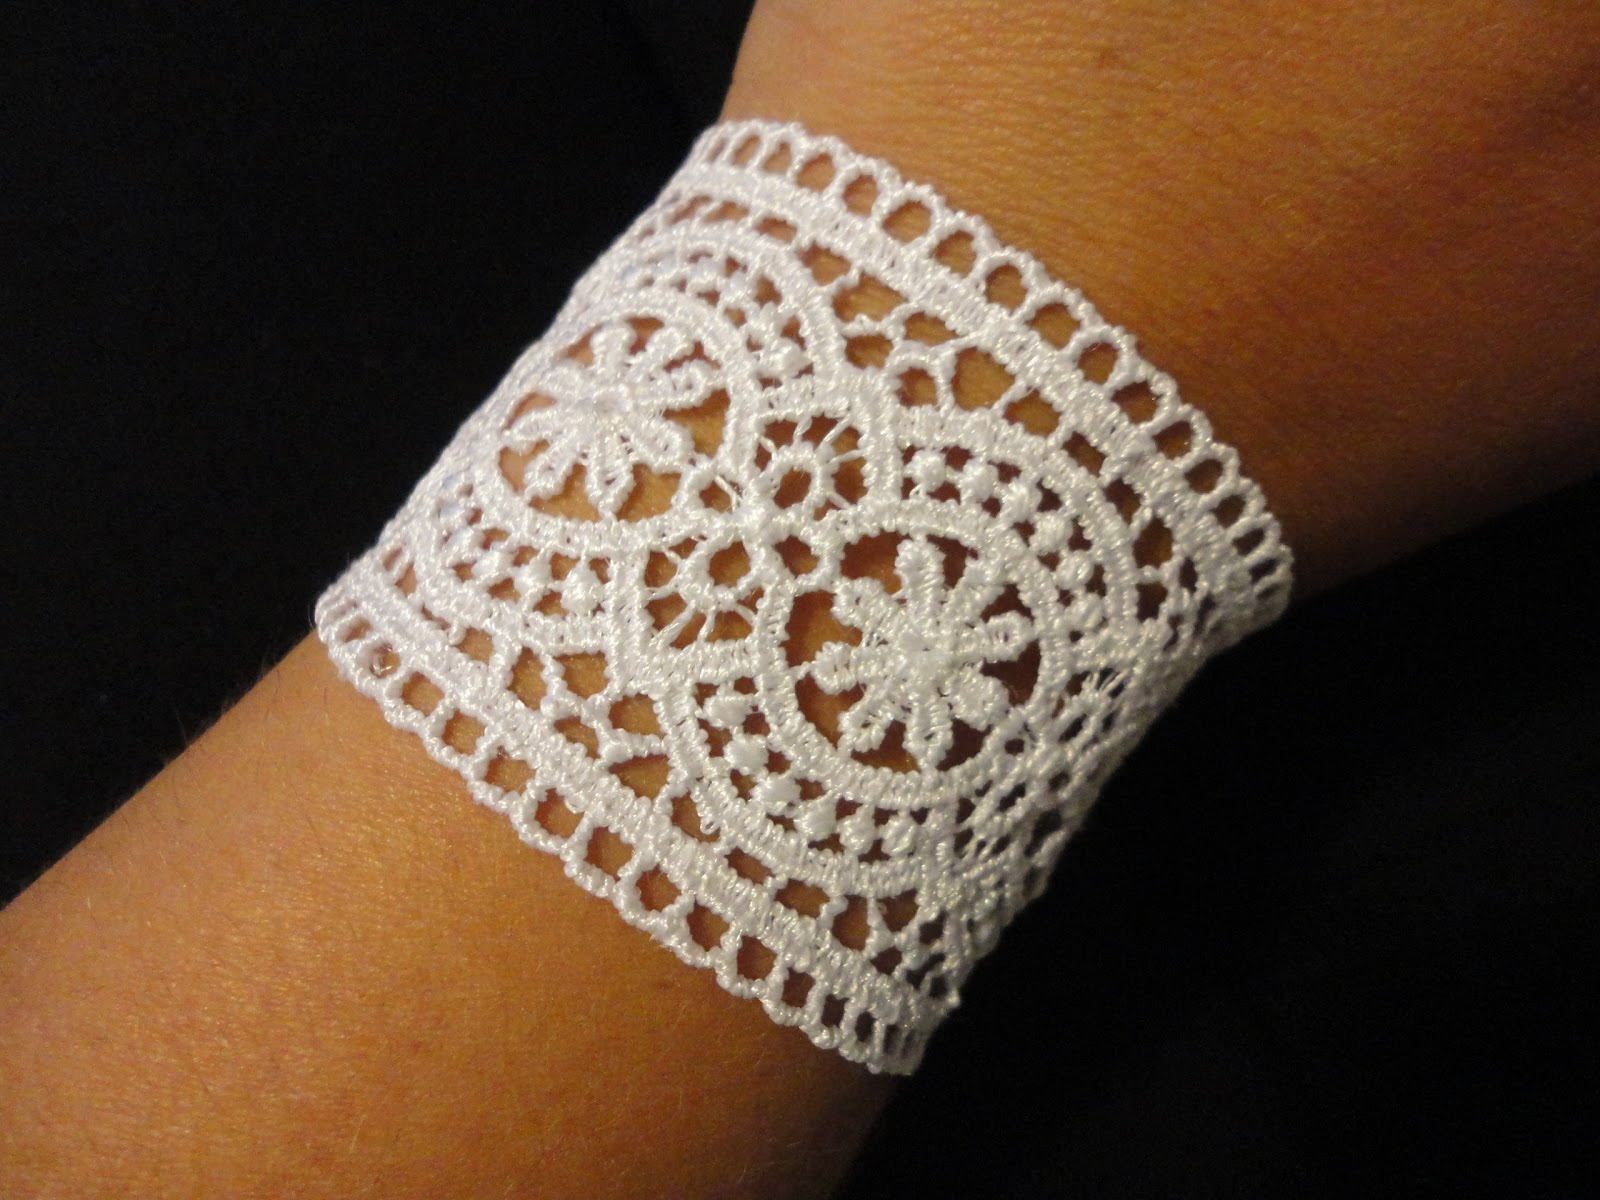 living and loving every second diy lace bracelet